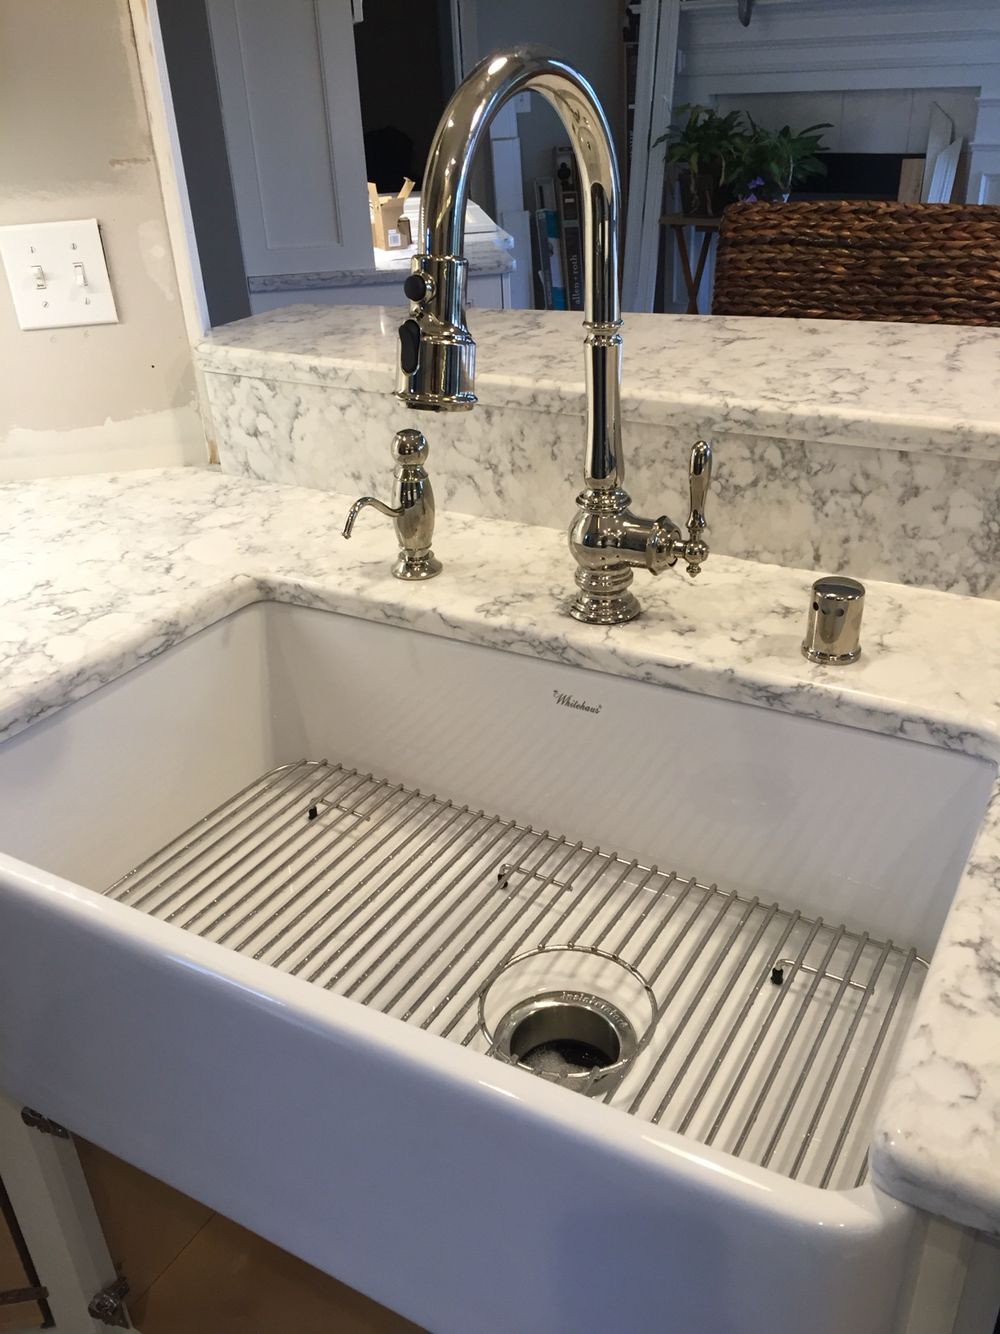 Kohler Artifacts Faucet W Whitehaus Farmhouse Sink Farmhouse Faucet Kohler Kitchen Faucet Whitehaus Farmhouse Sink